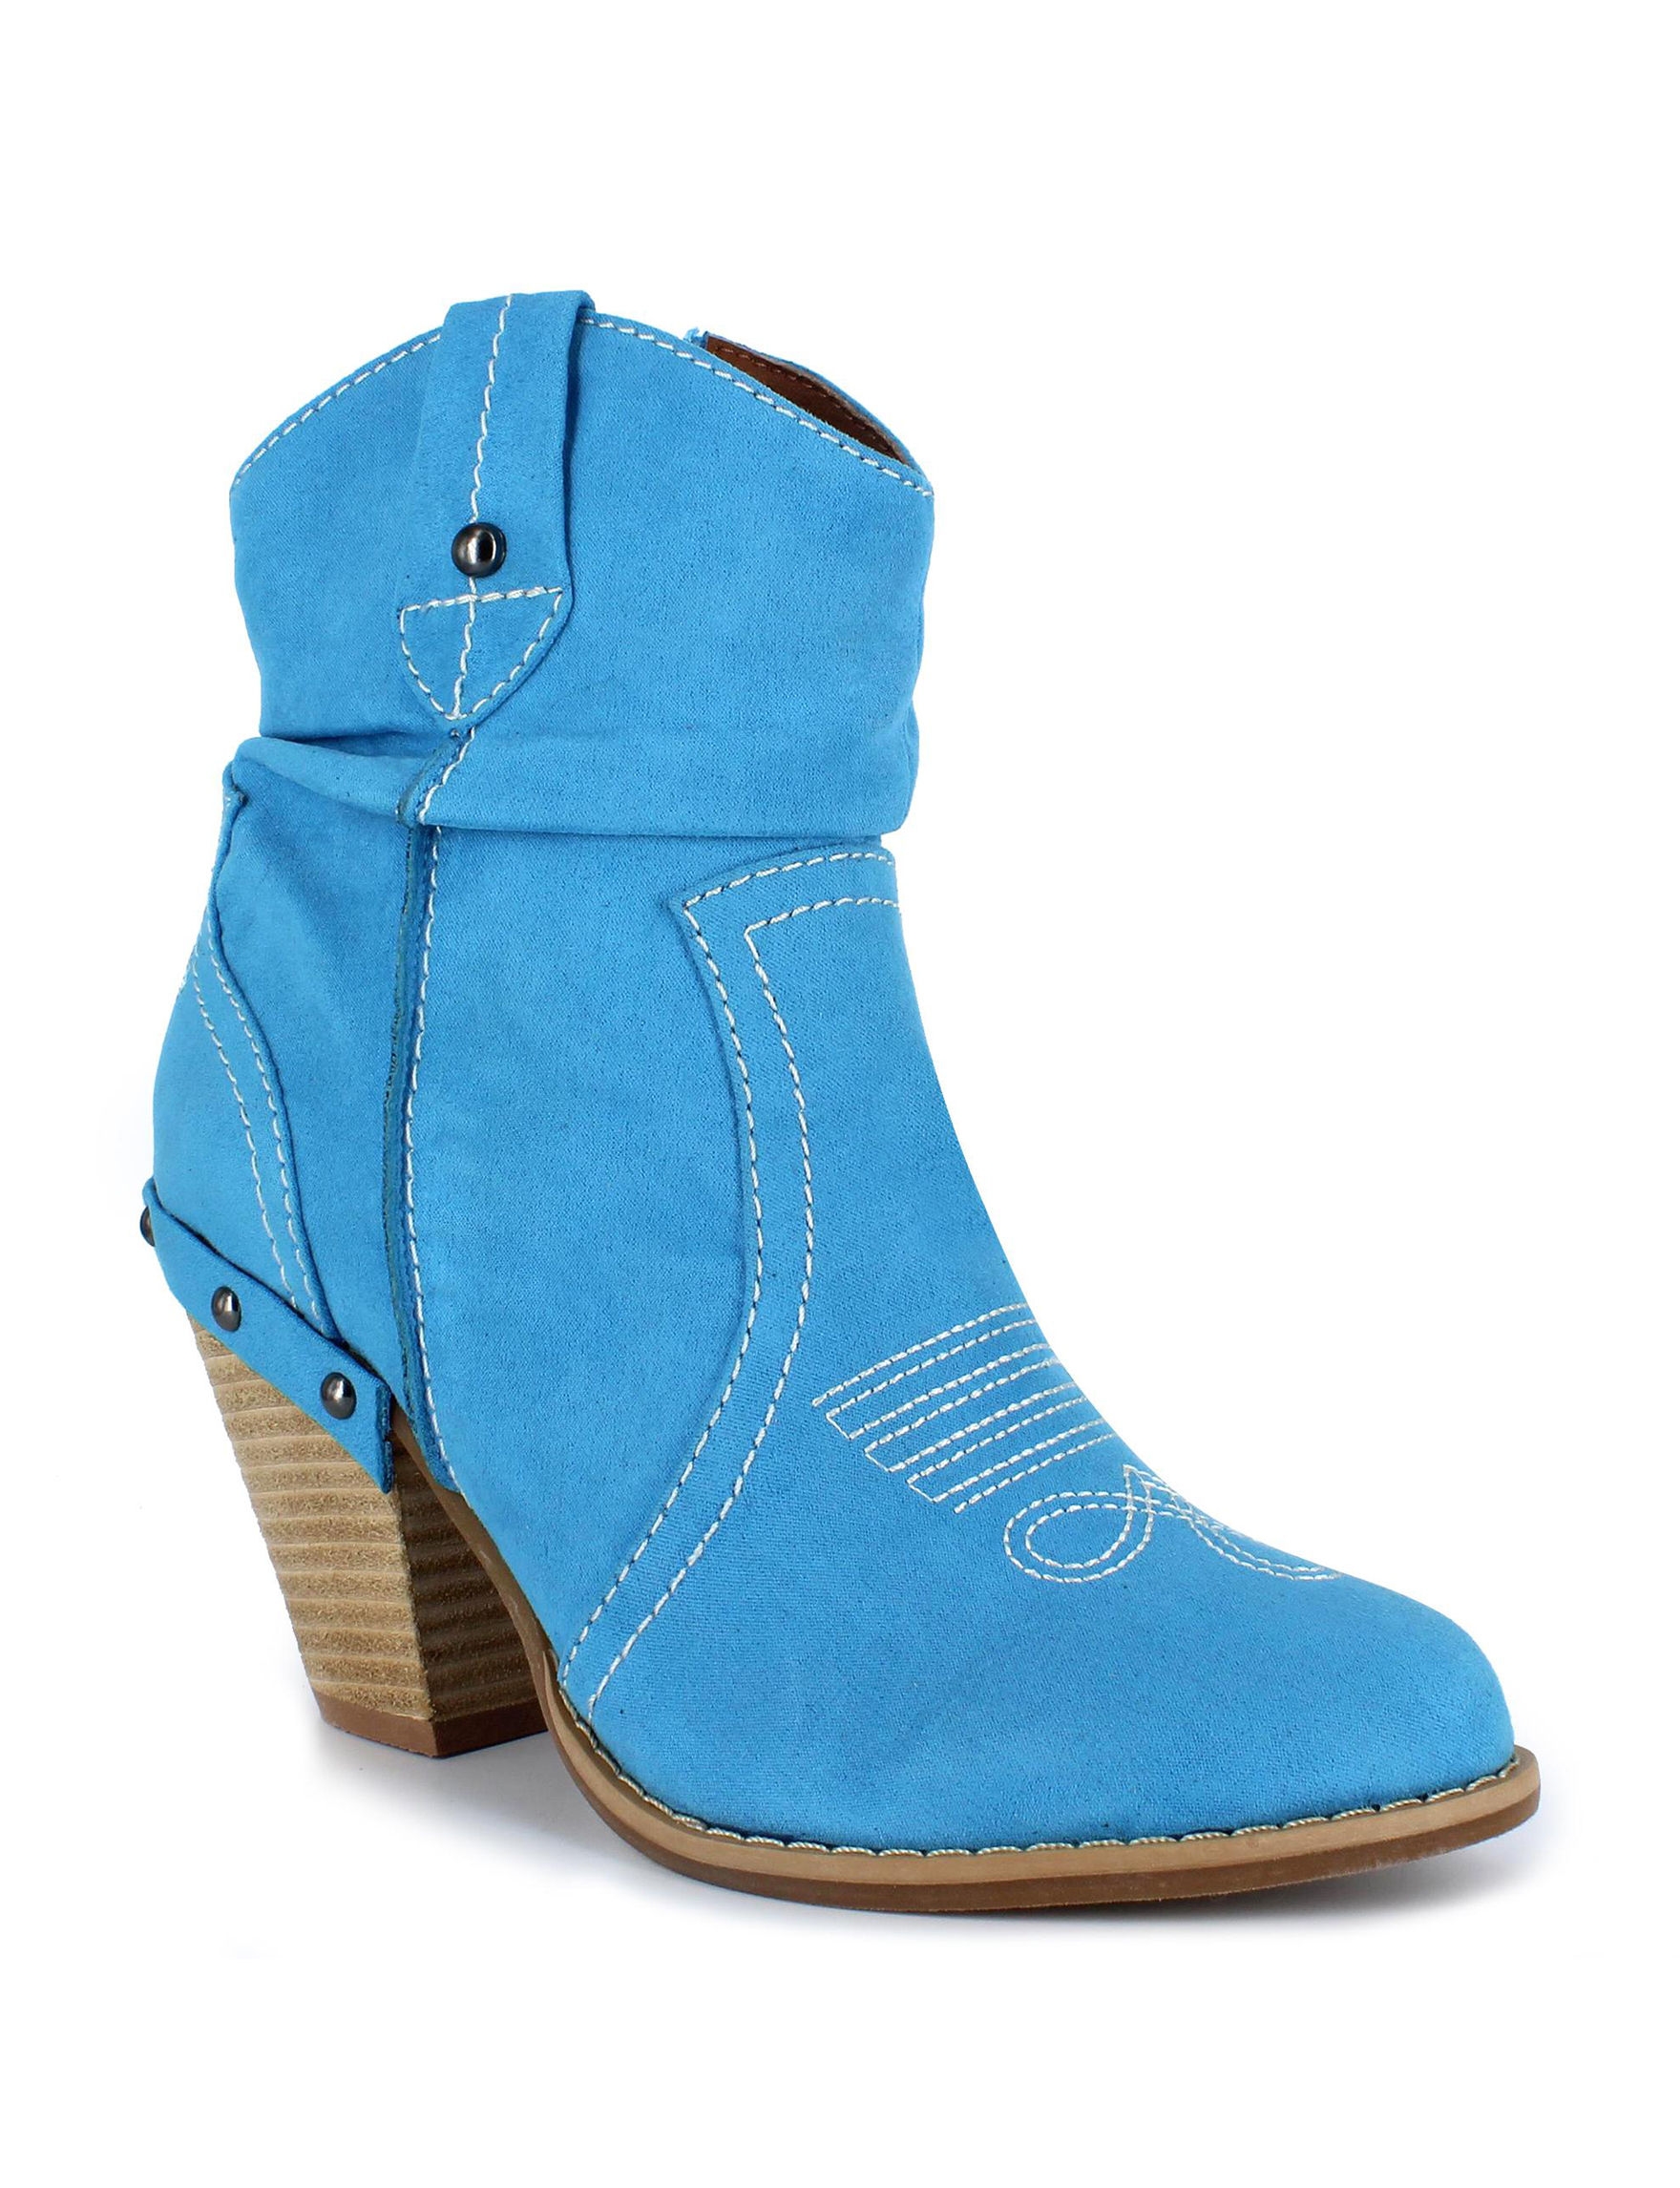 Dolce by Mojo Moxy Denim Ankle Boots & Booties